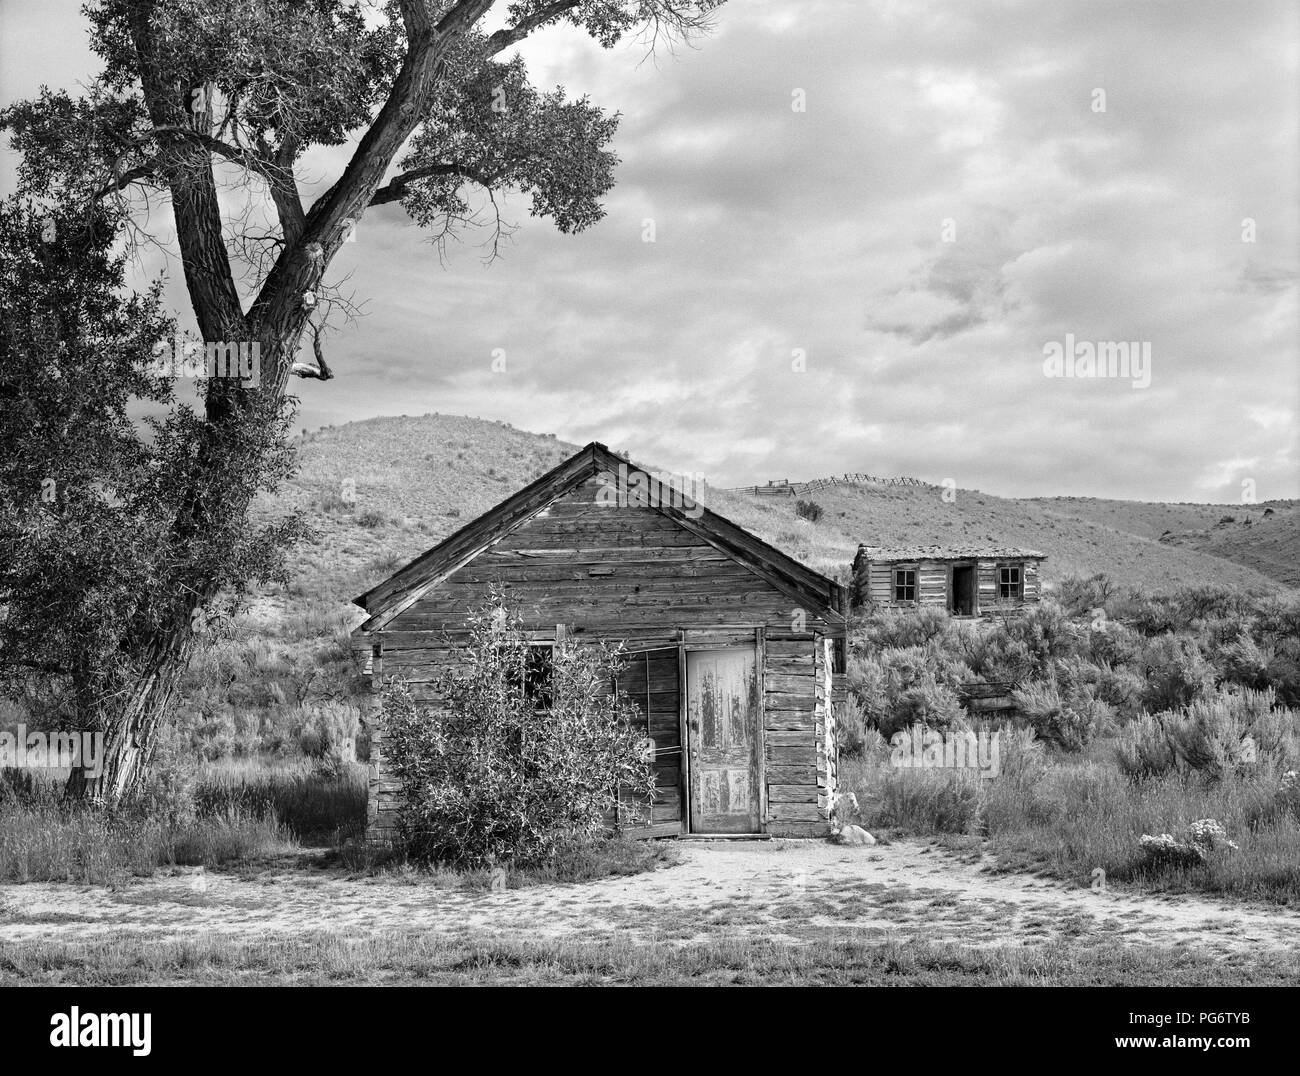 Houses in the ghost town of Bannack in Montana, the United States - Stock Image